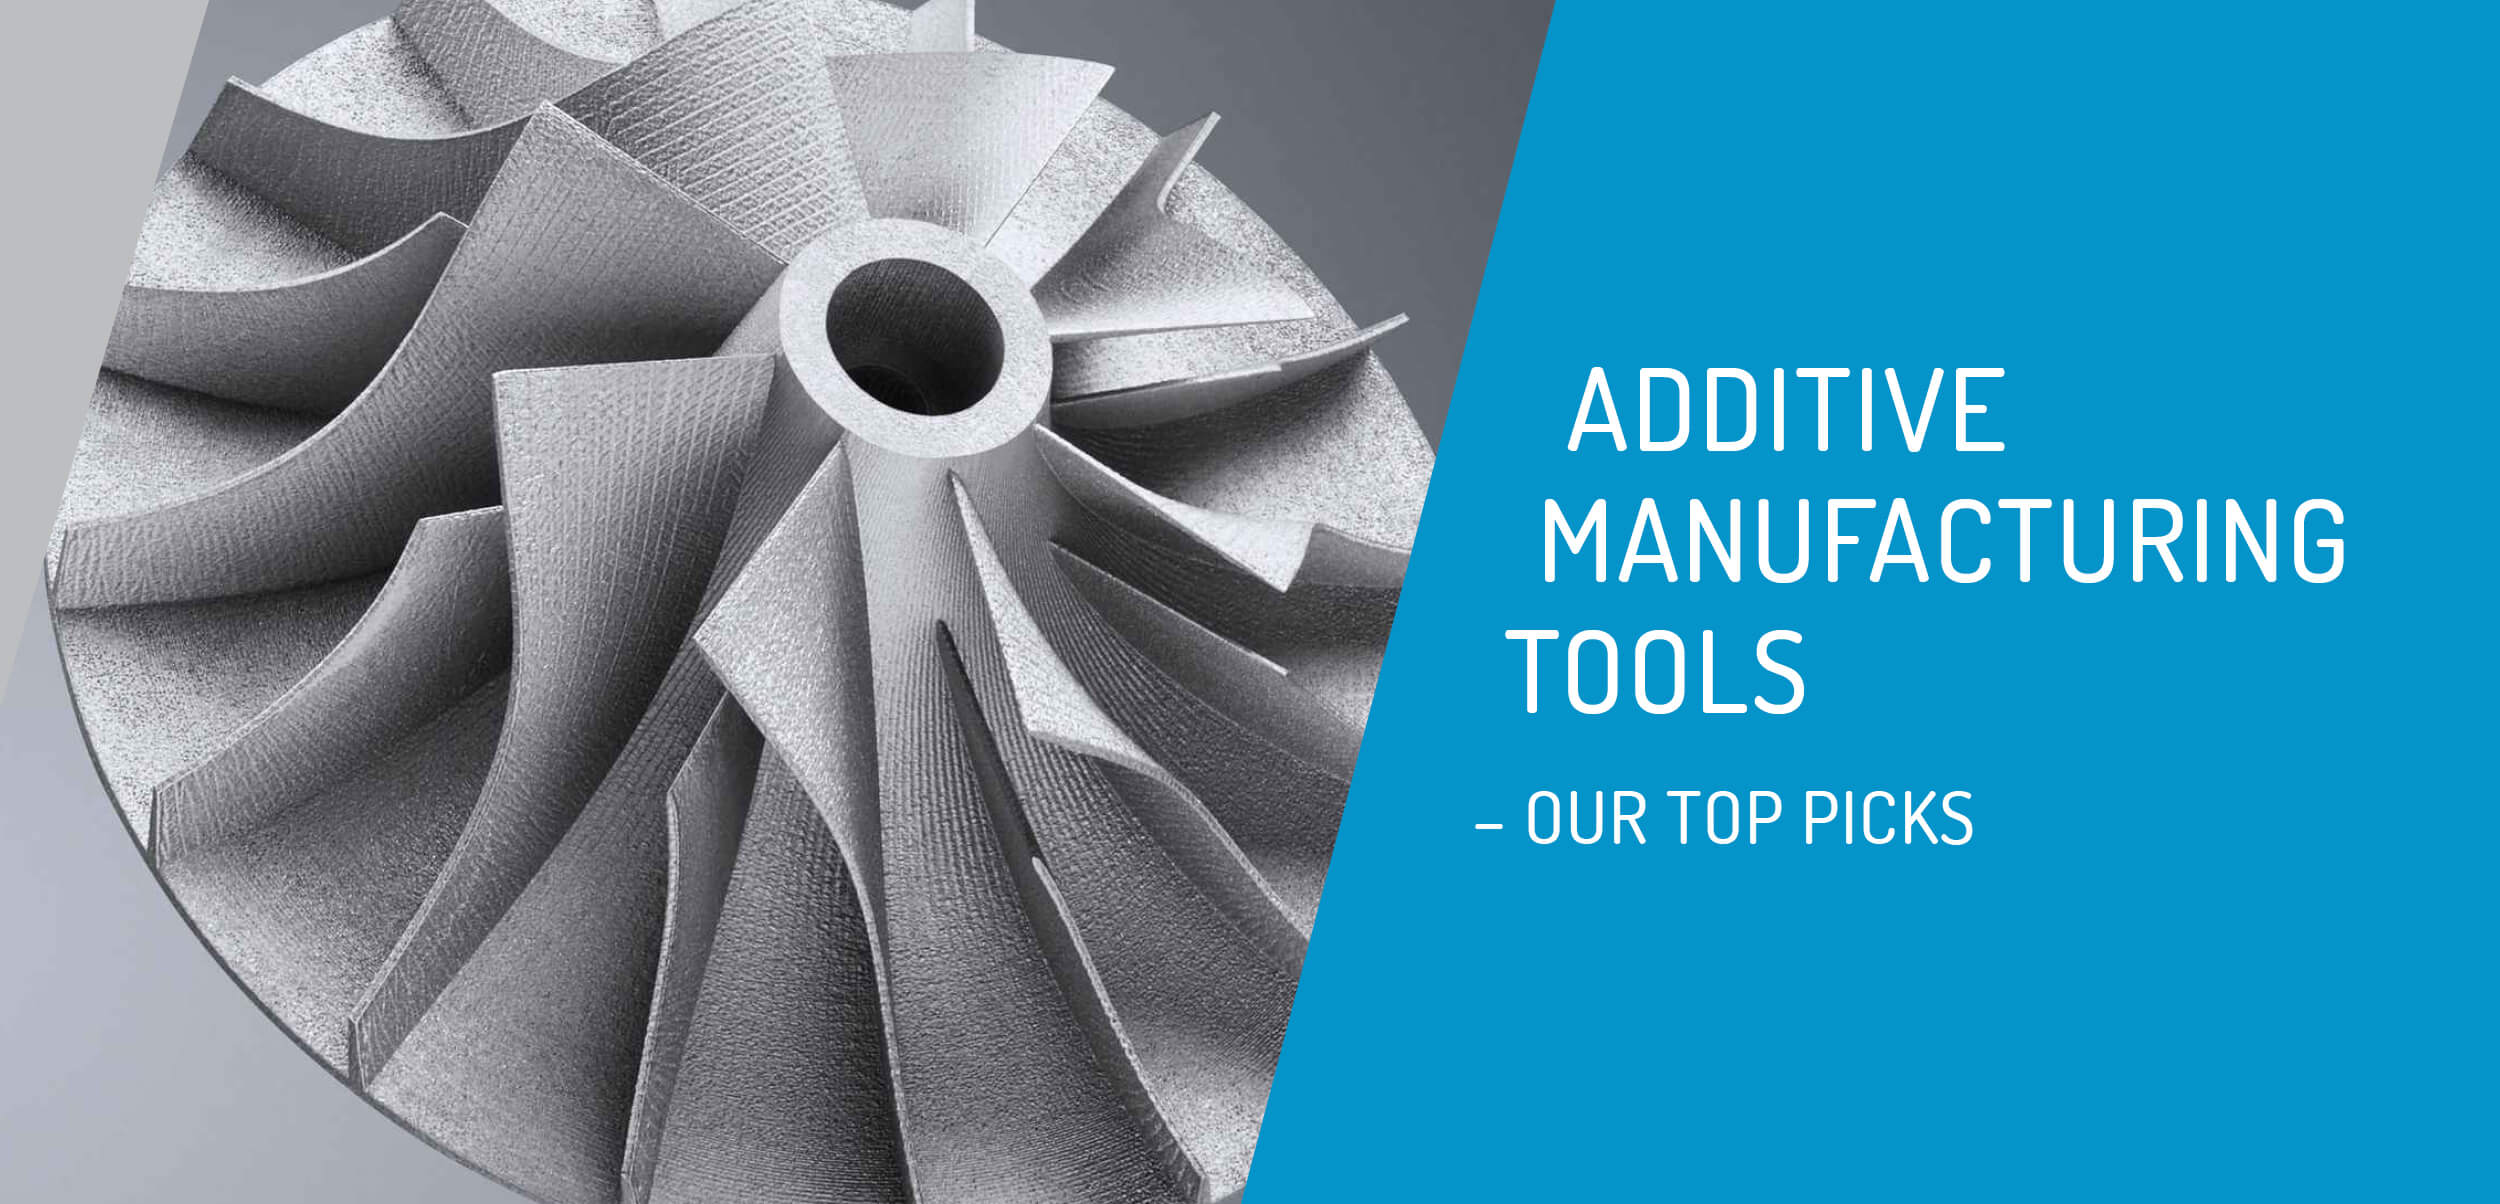 Additive manufacturing tools